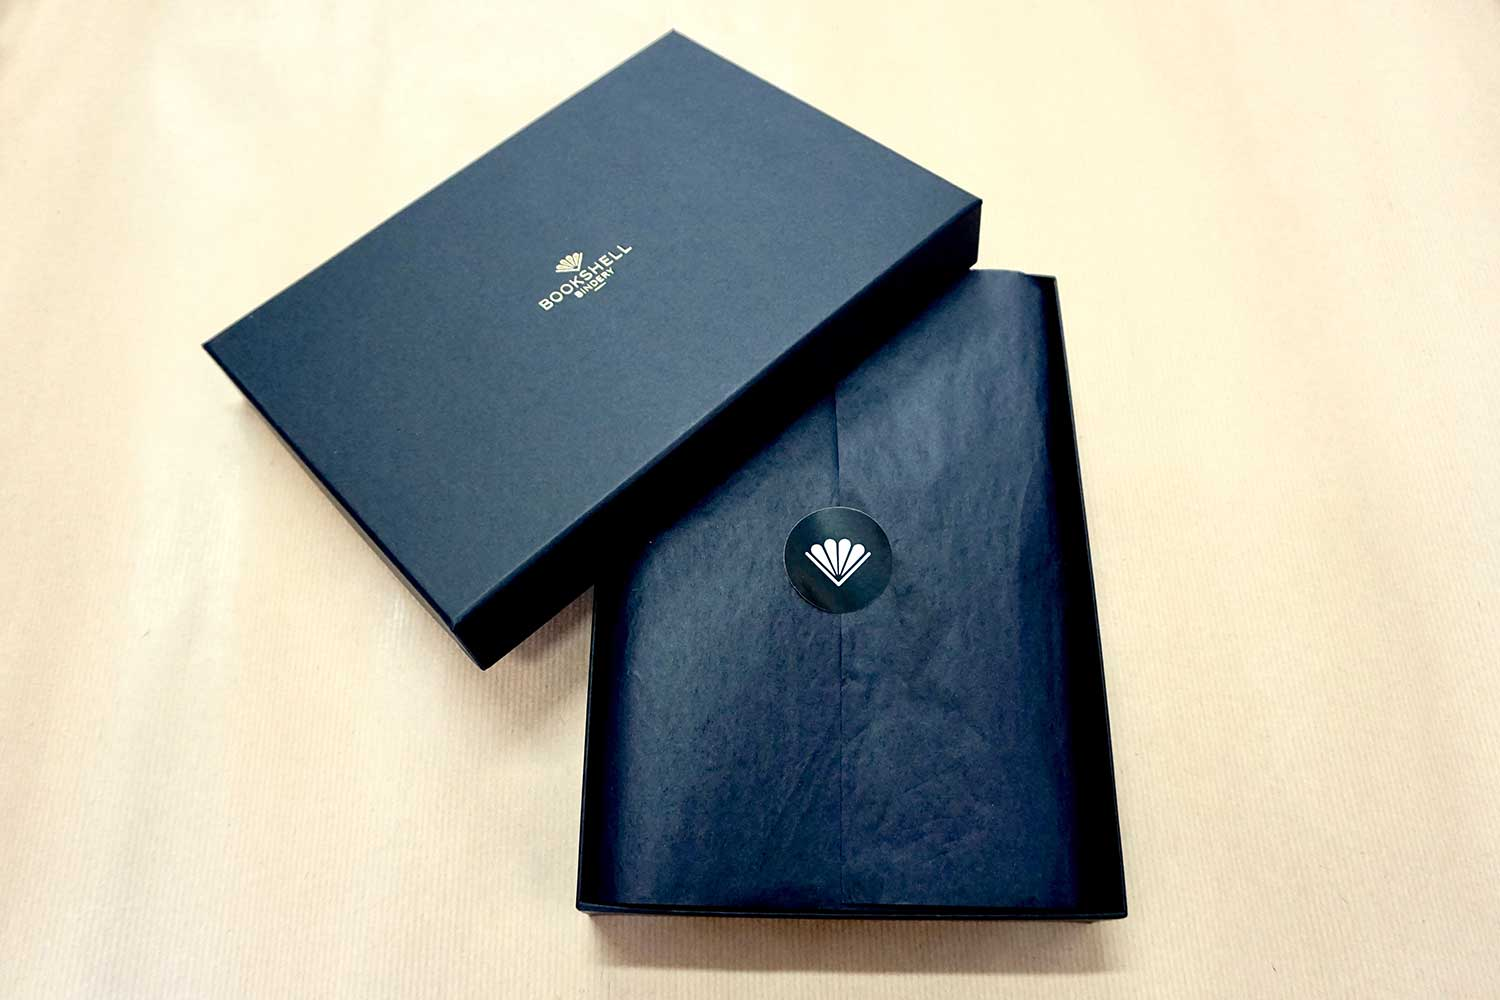 Personalized leather journal in dark from Bookshell bindery is ready to gift in beautiful packaging